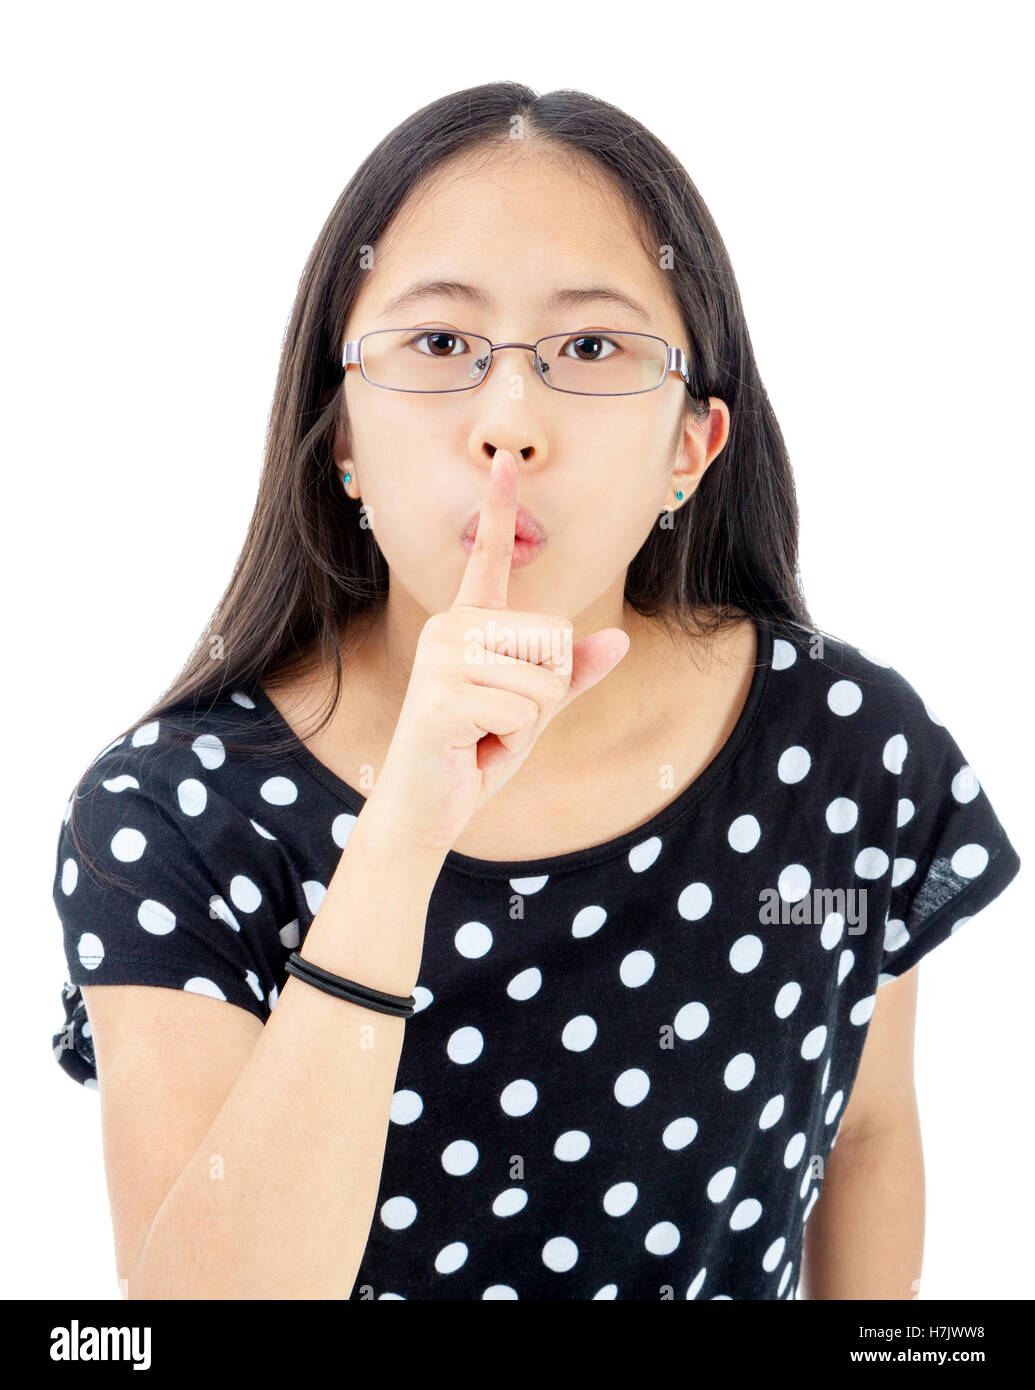 Asian tween with finger on lips in a gesture to keep silent - Stock Image